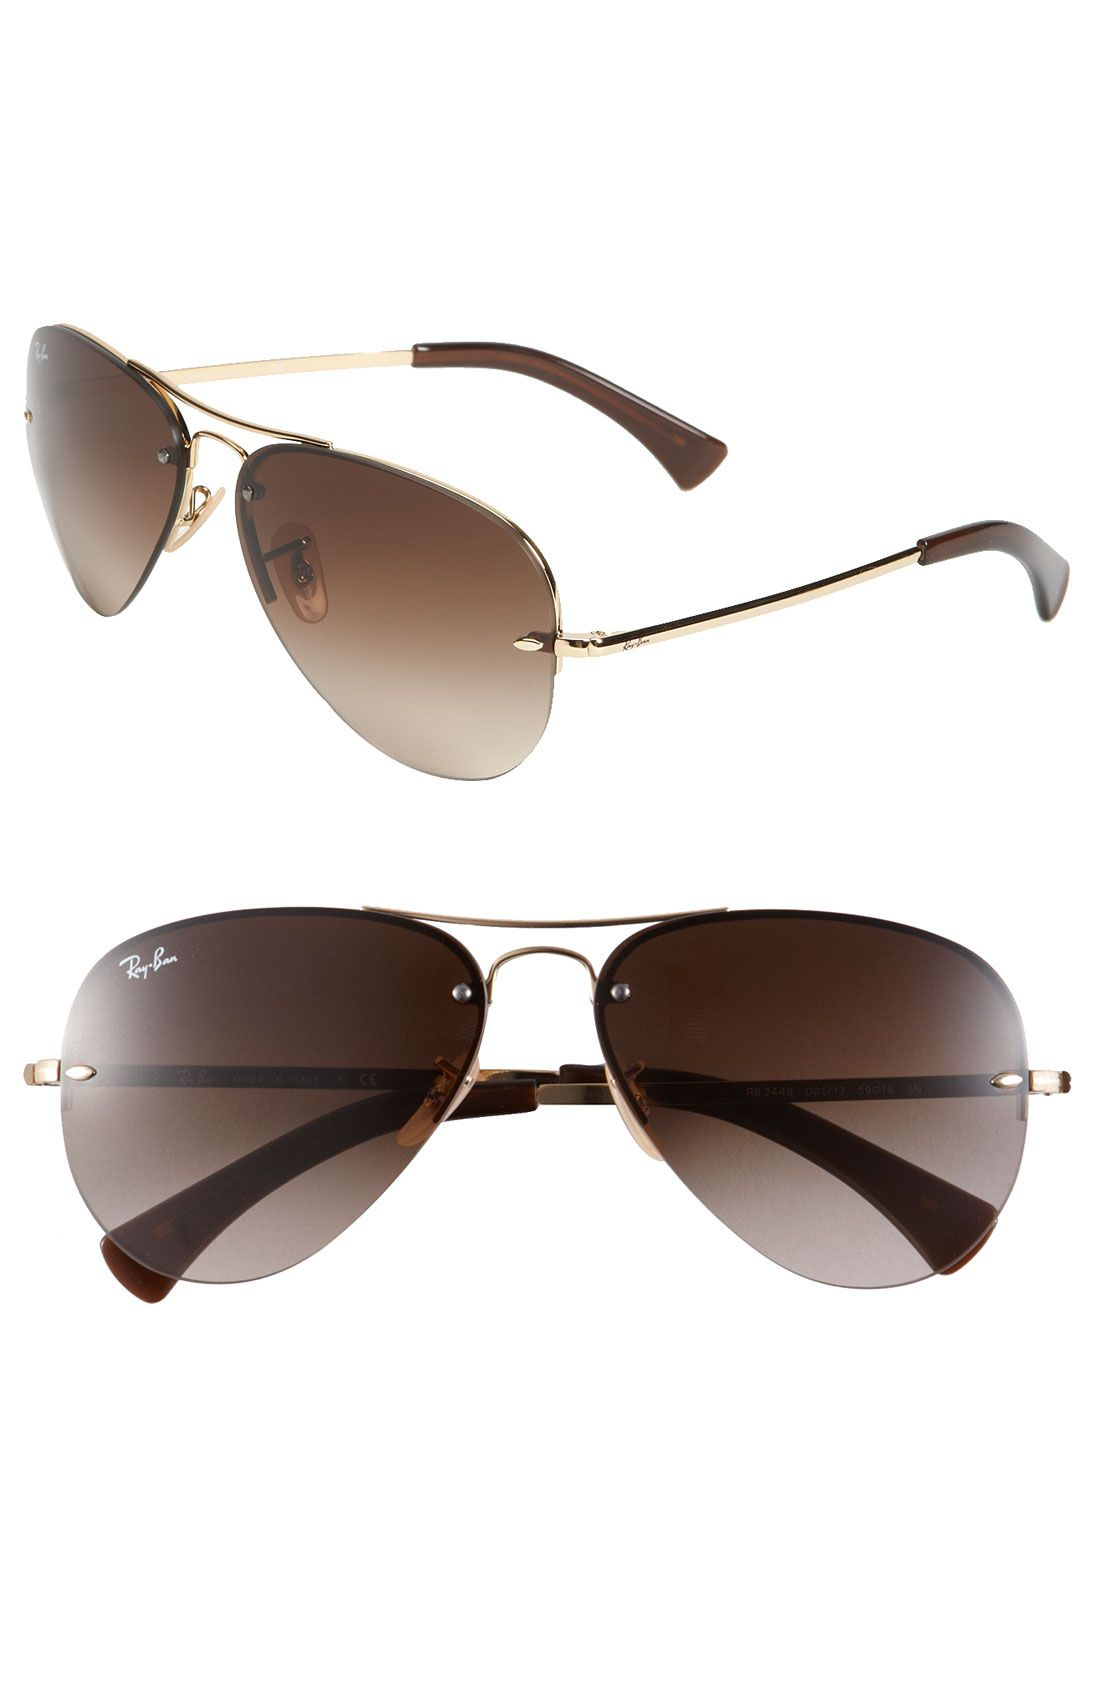 Ray-Ban 59mm Semi Rimless Aviator Sunglasses | Fashion | Pinterest ...